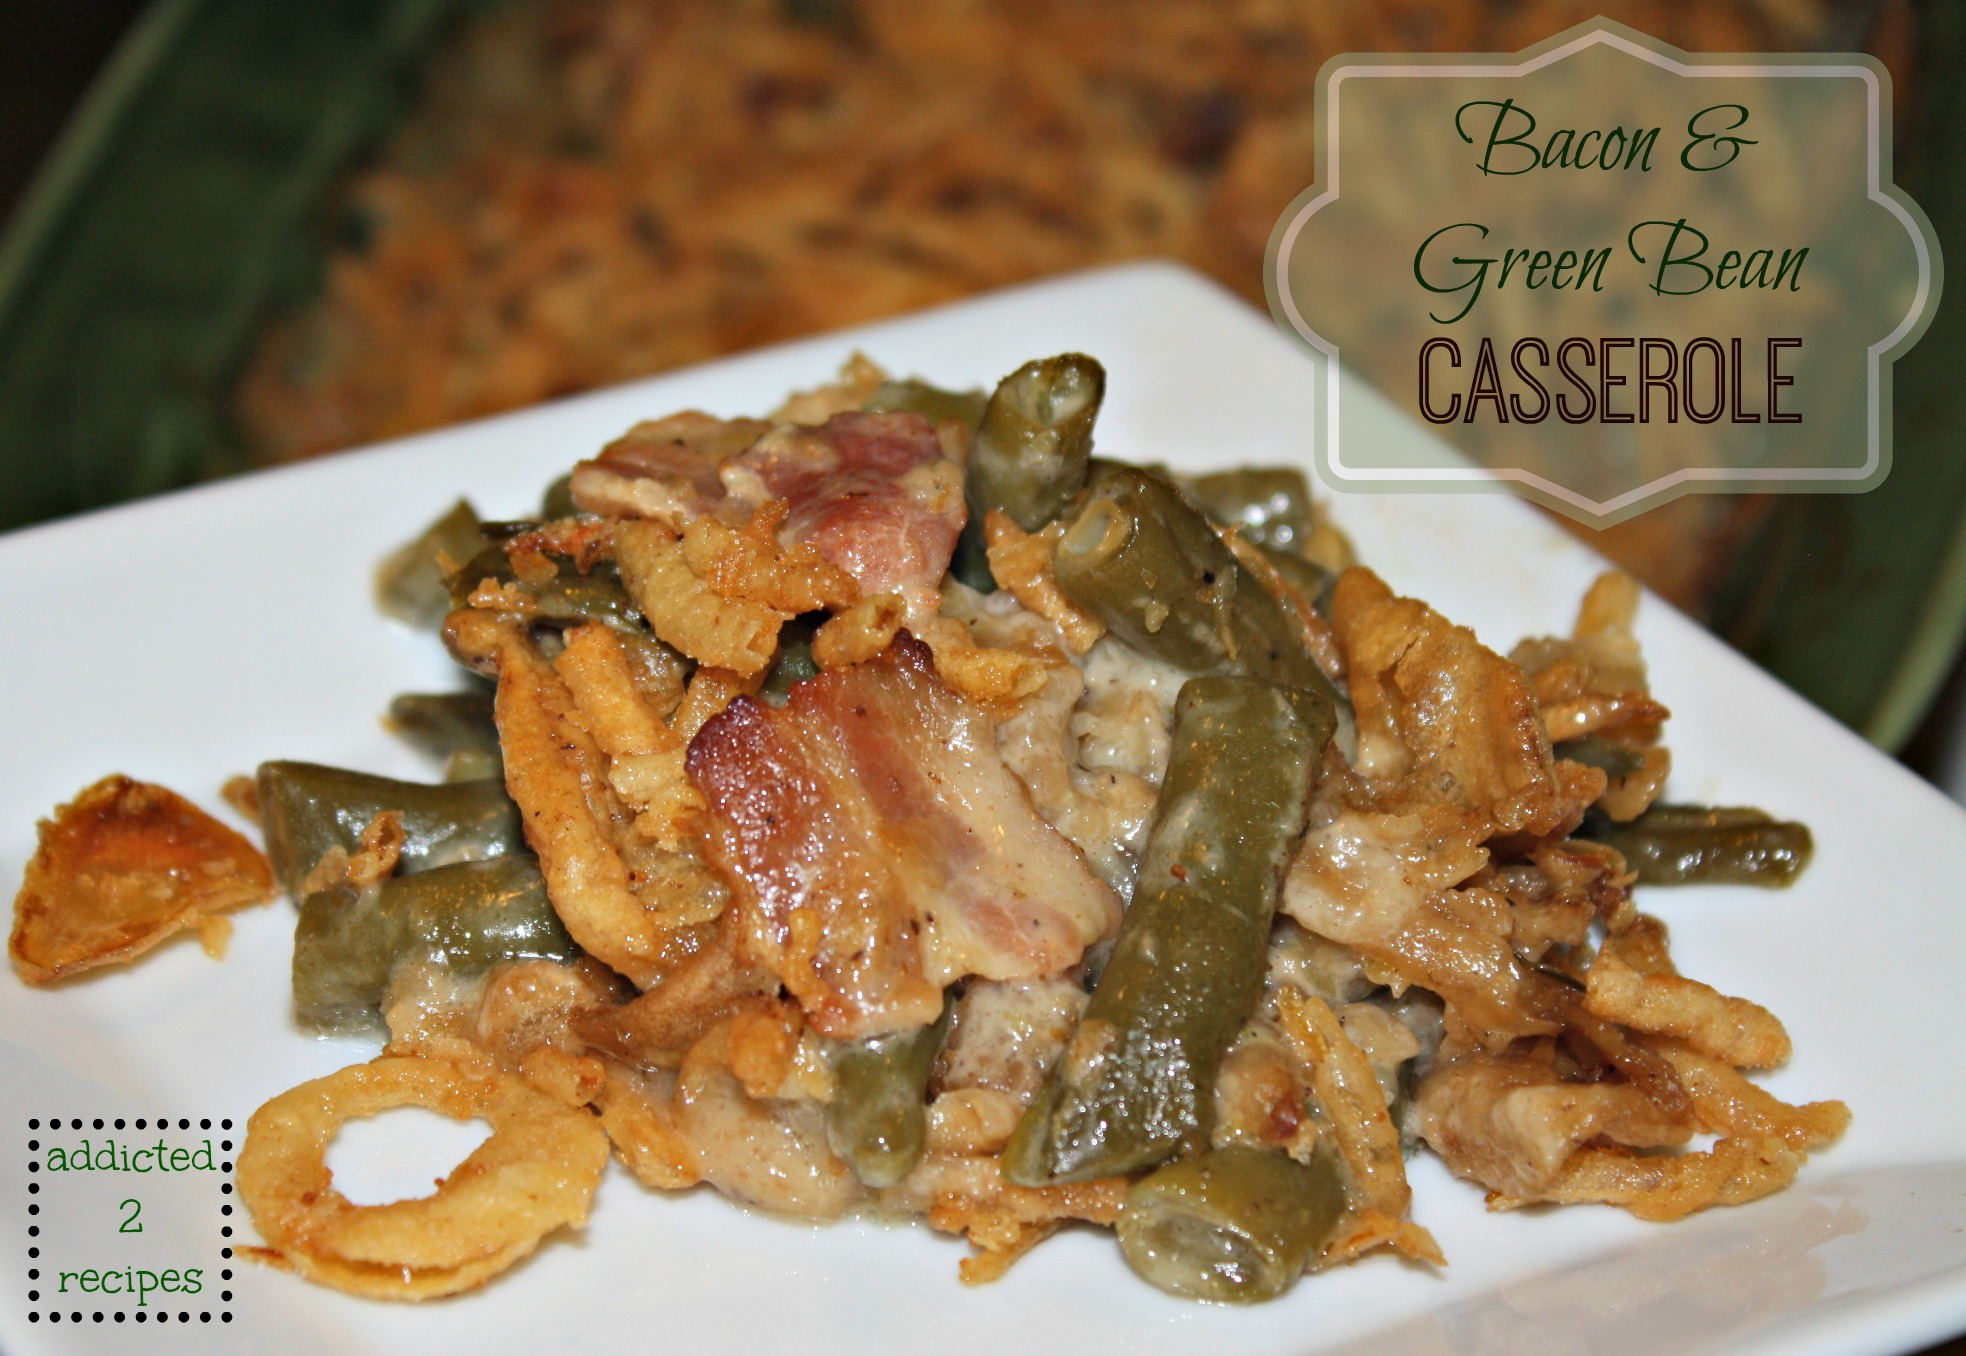 Bacon and Green Bean Casserole